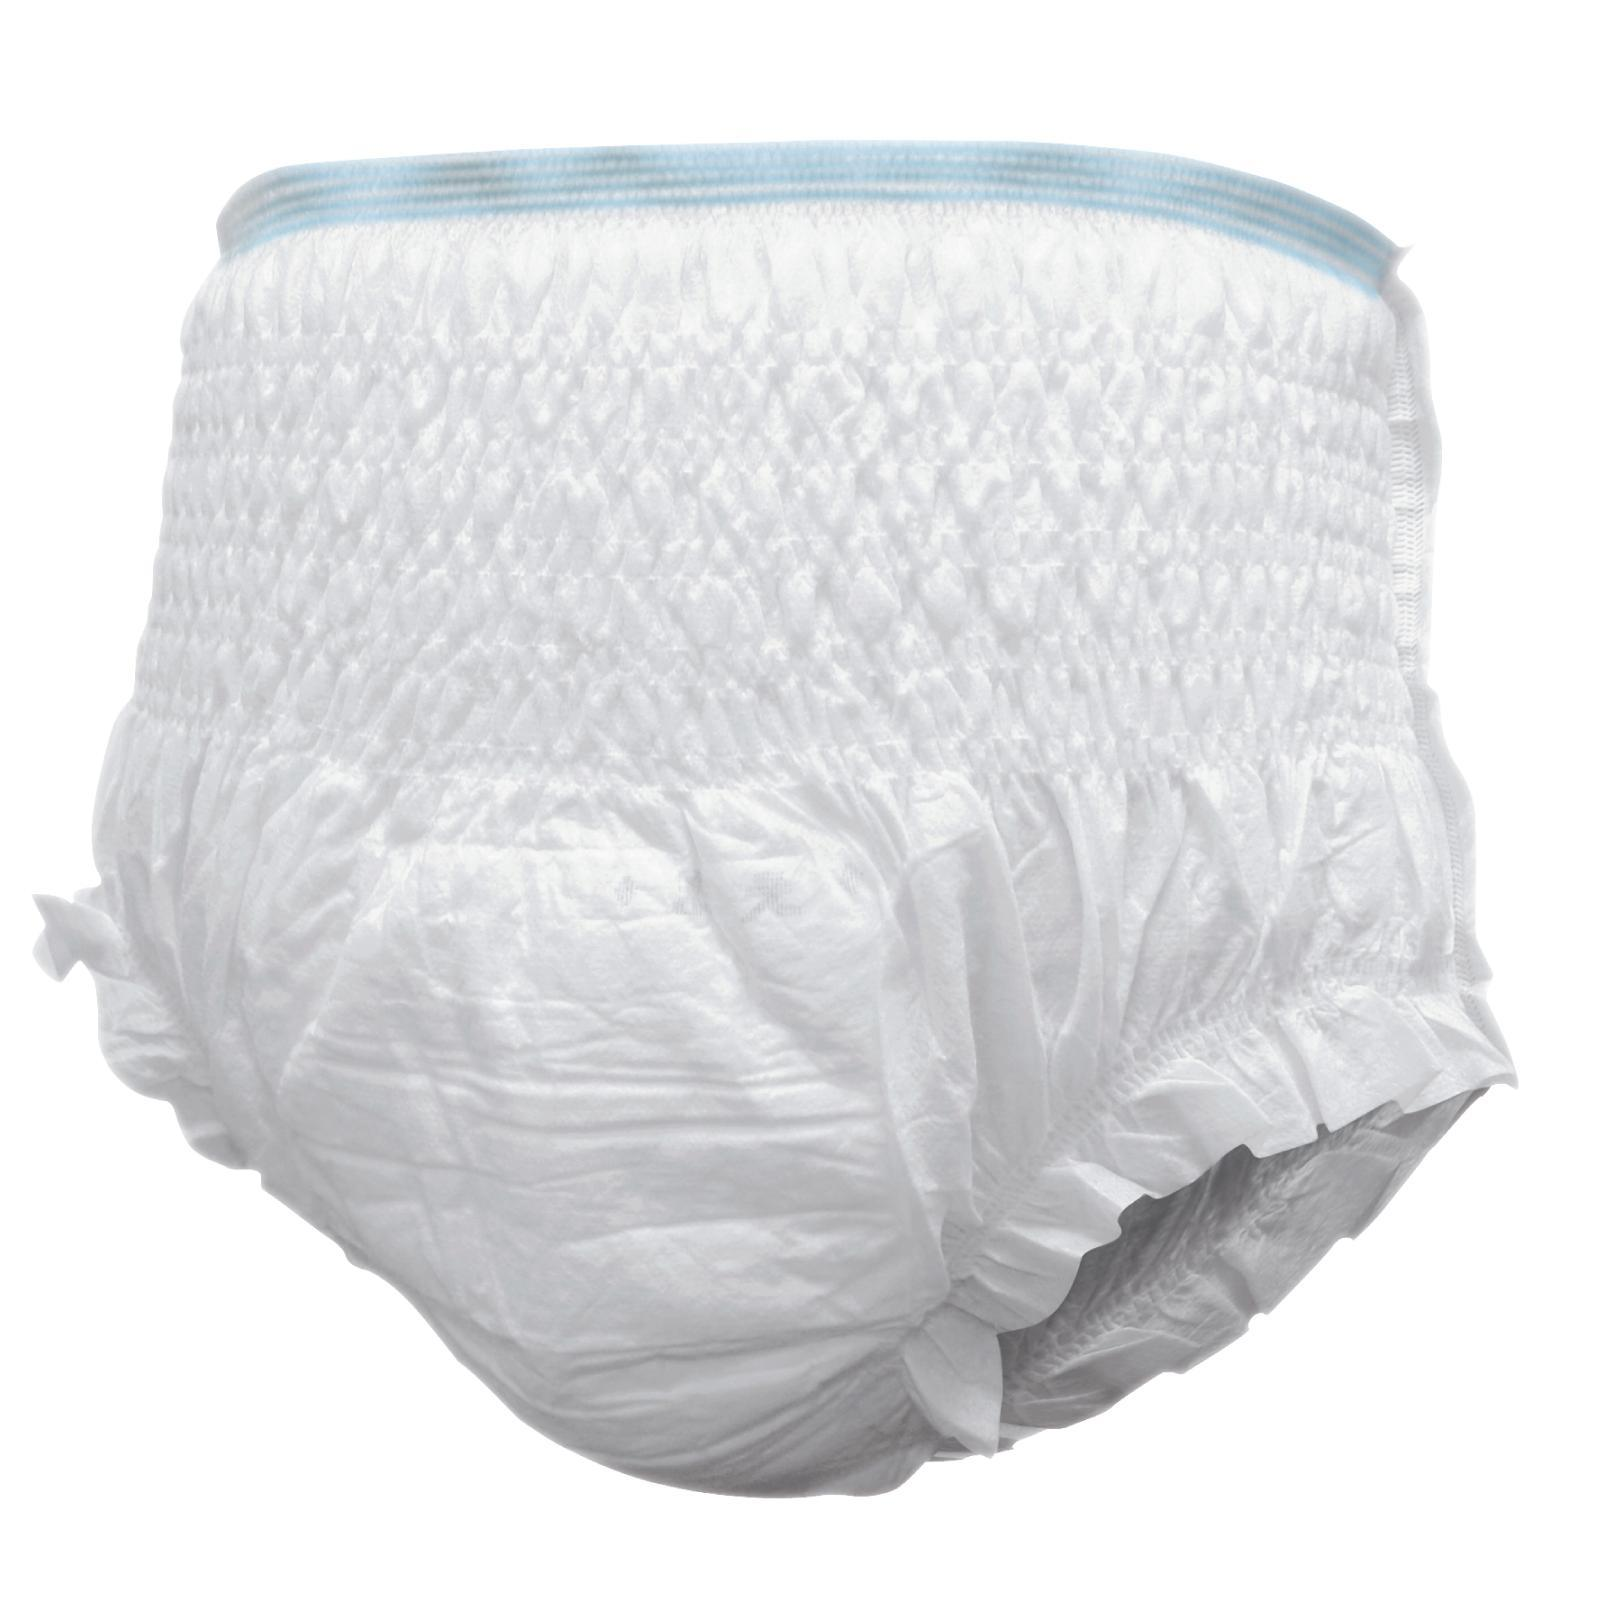 Adult Pull up Briefs (L) Adult Pull up Diapers for Incontinence Adult Pull up Underwear Adult Pull up Briefs Adult Pull up Diapers